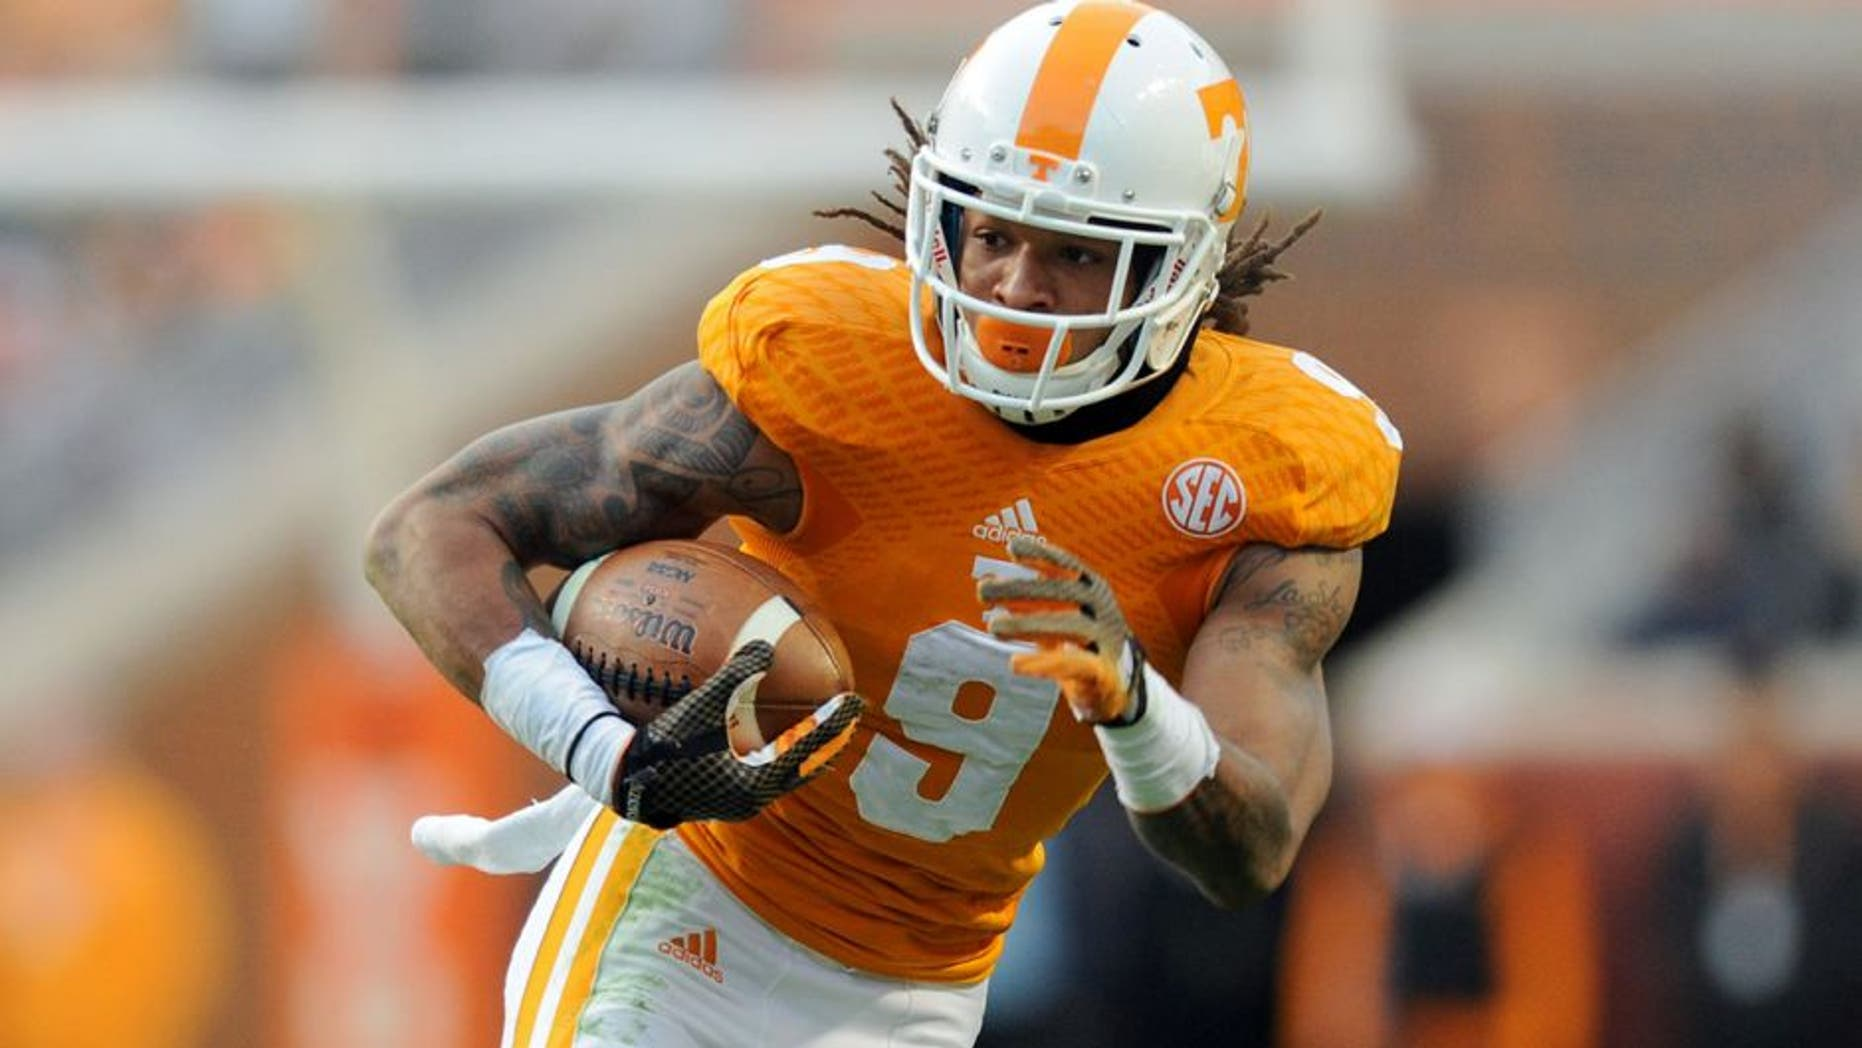 Nov 15, 2014; Knoxville, TN, USA; Tennessee Volunteers wide receiver Von Pearson (9) runs the ball against the Kentucky Wildcats during the first half at Neyland Stadium. Mandatory Credit: Randy Sartin-USA TODAY Sports